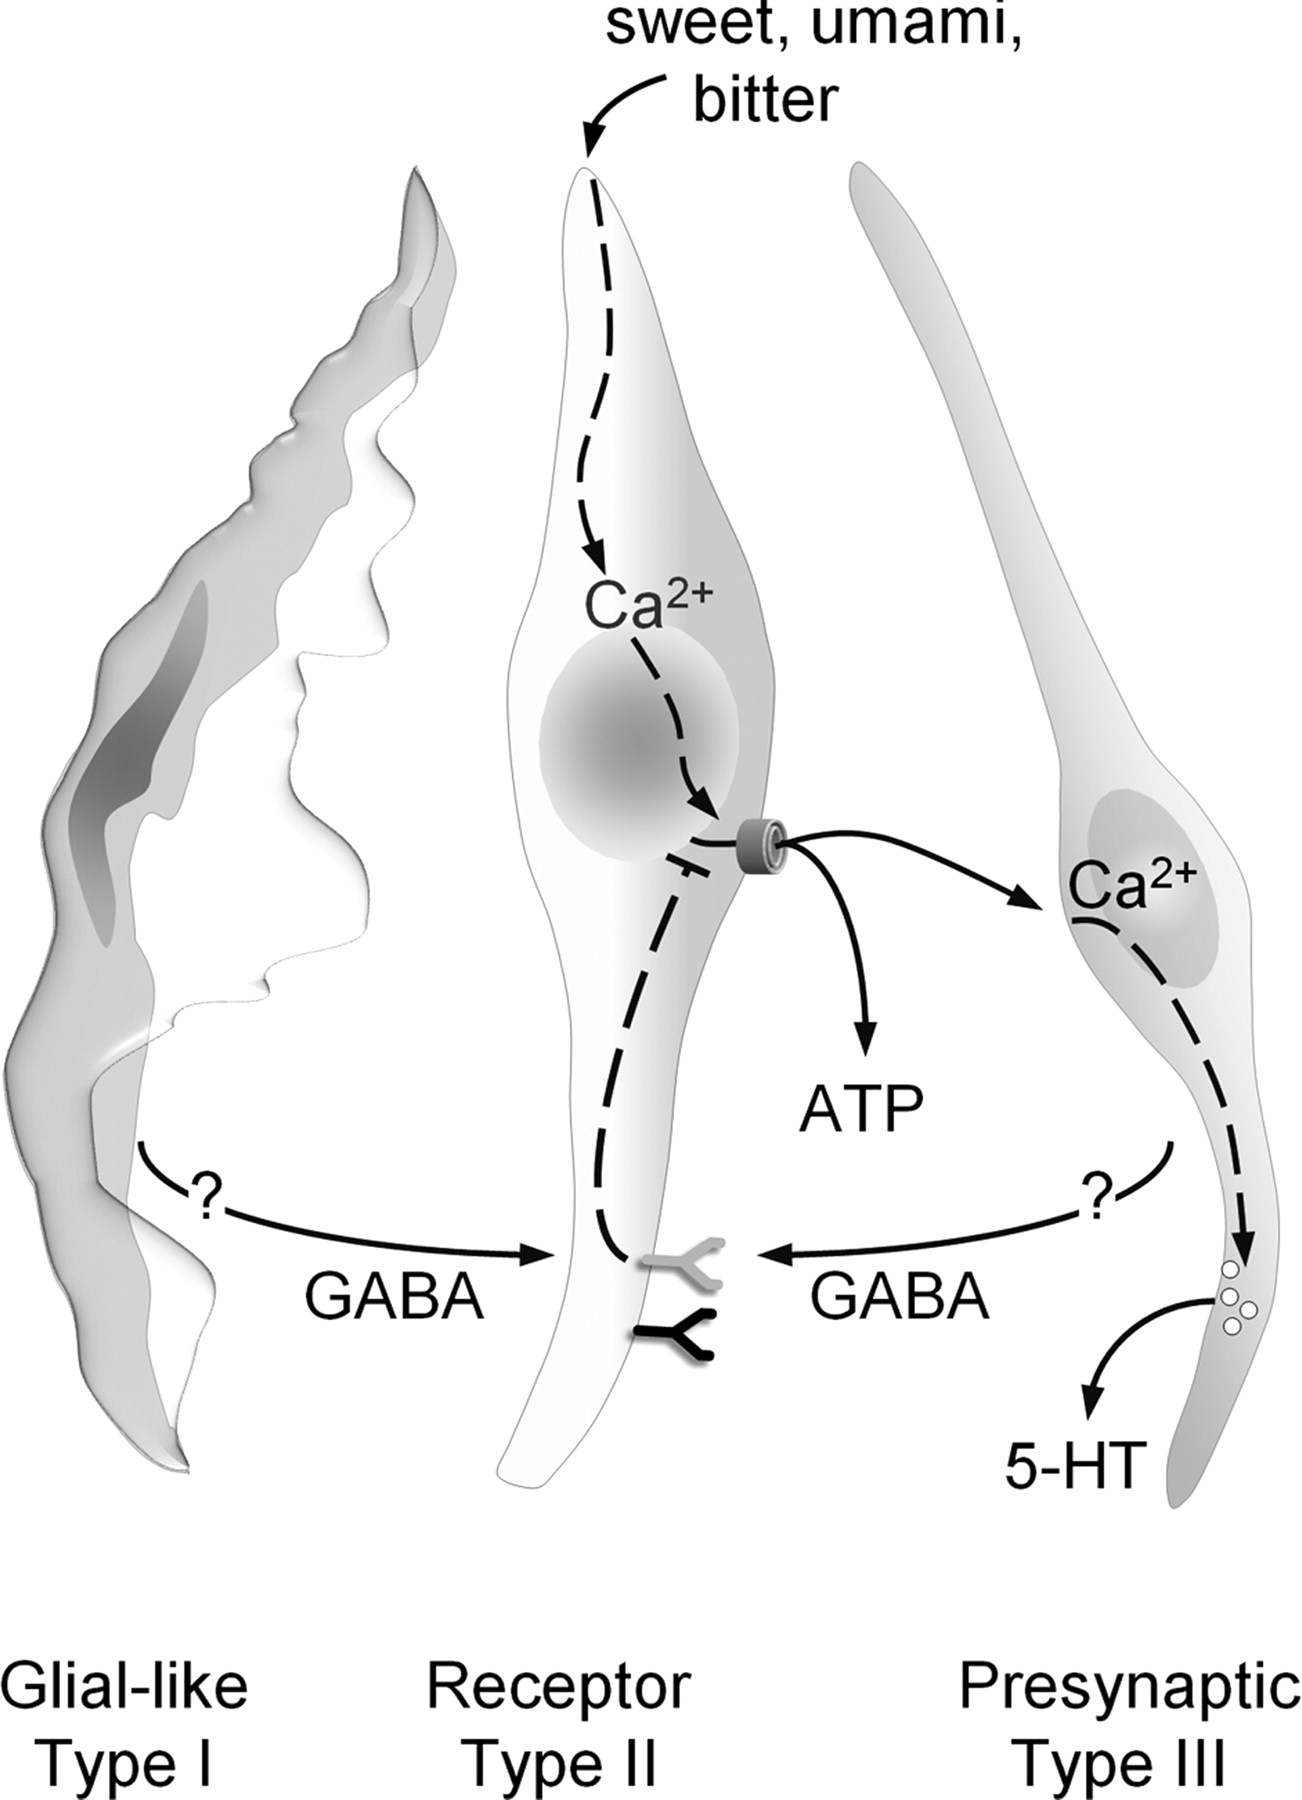 Gaba Its Receptors And Gabaergic Inhibition In Mouse Taste Buds